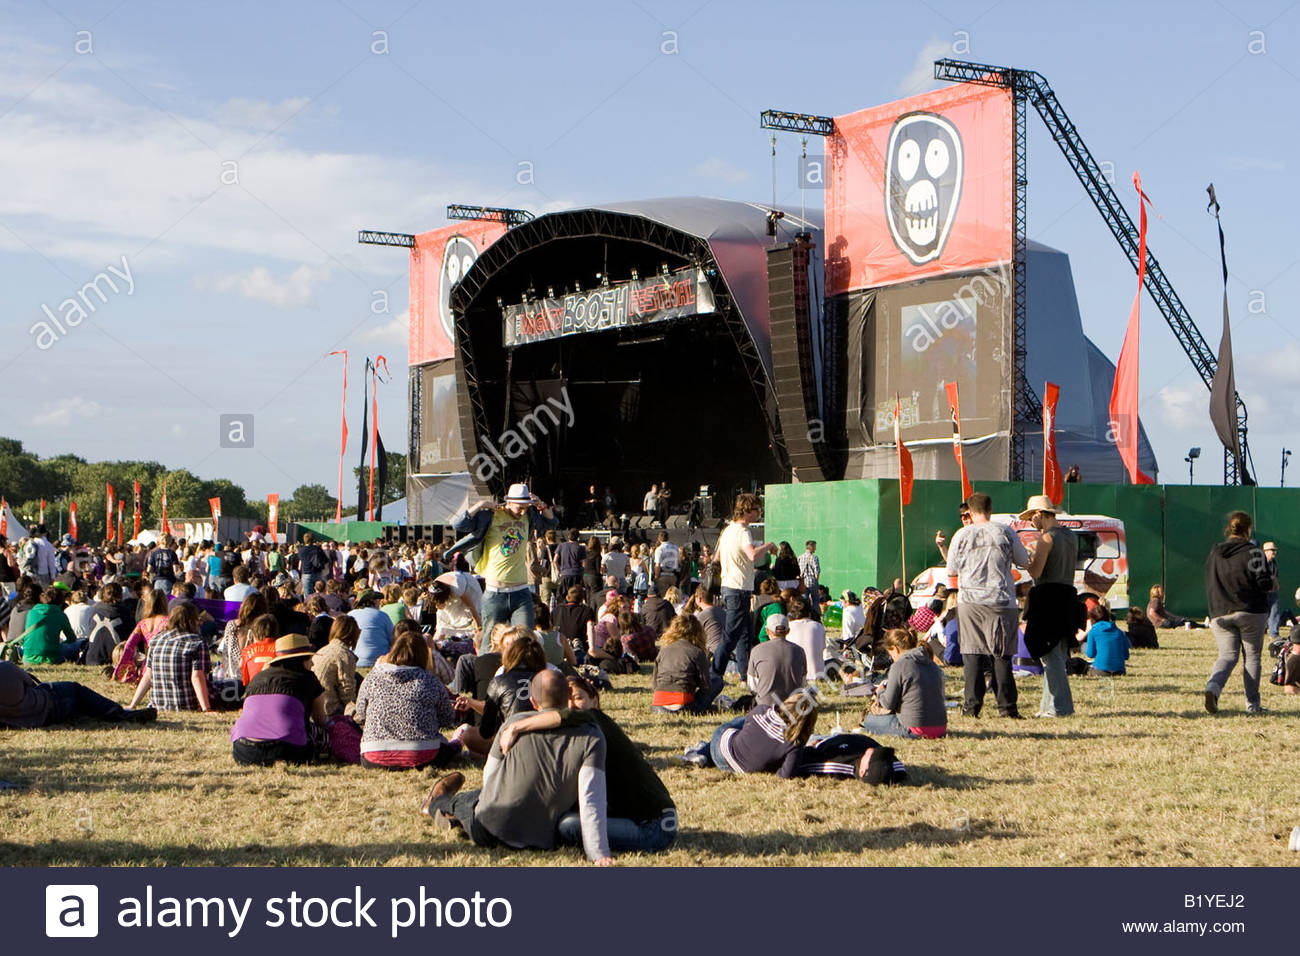 crowds at the mighty boosh festival at the hop farm in kent england - Stock Image